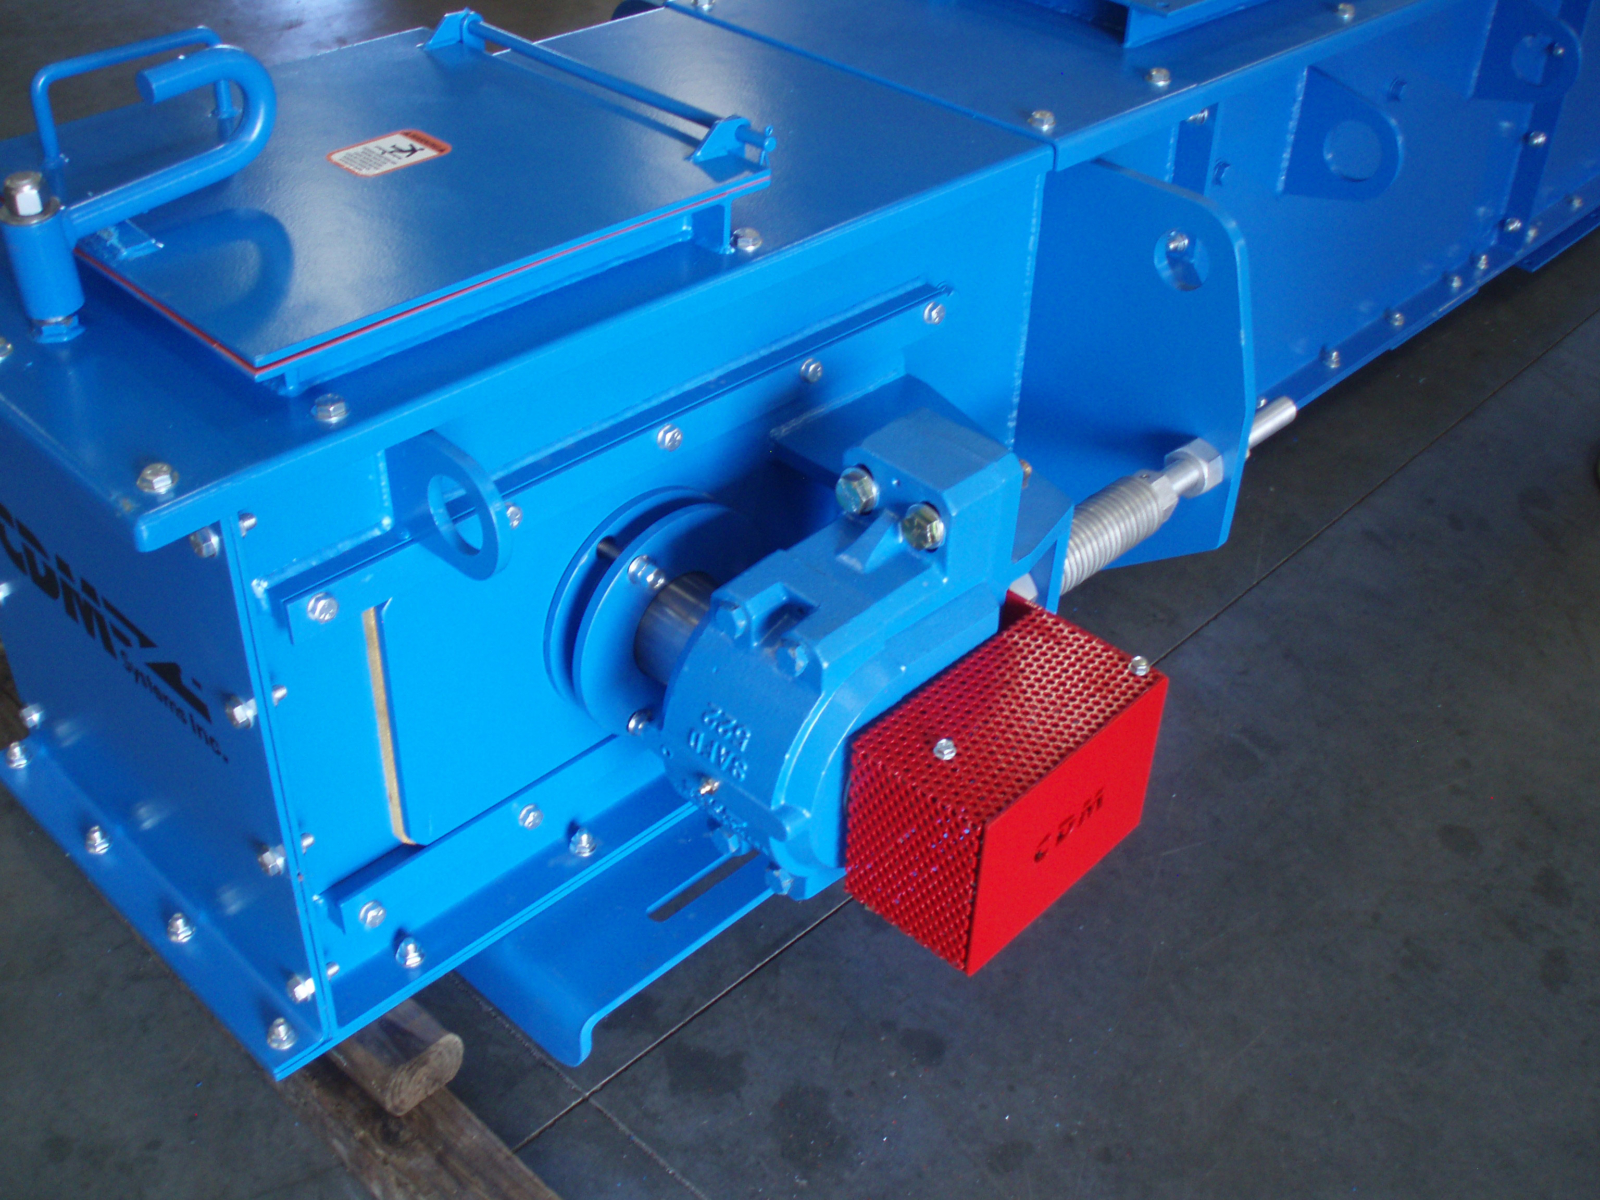 CDM Systems ceramic-lined En-Masse Drag Chain Conveyor for abrasive material conveying.